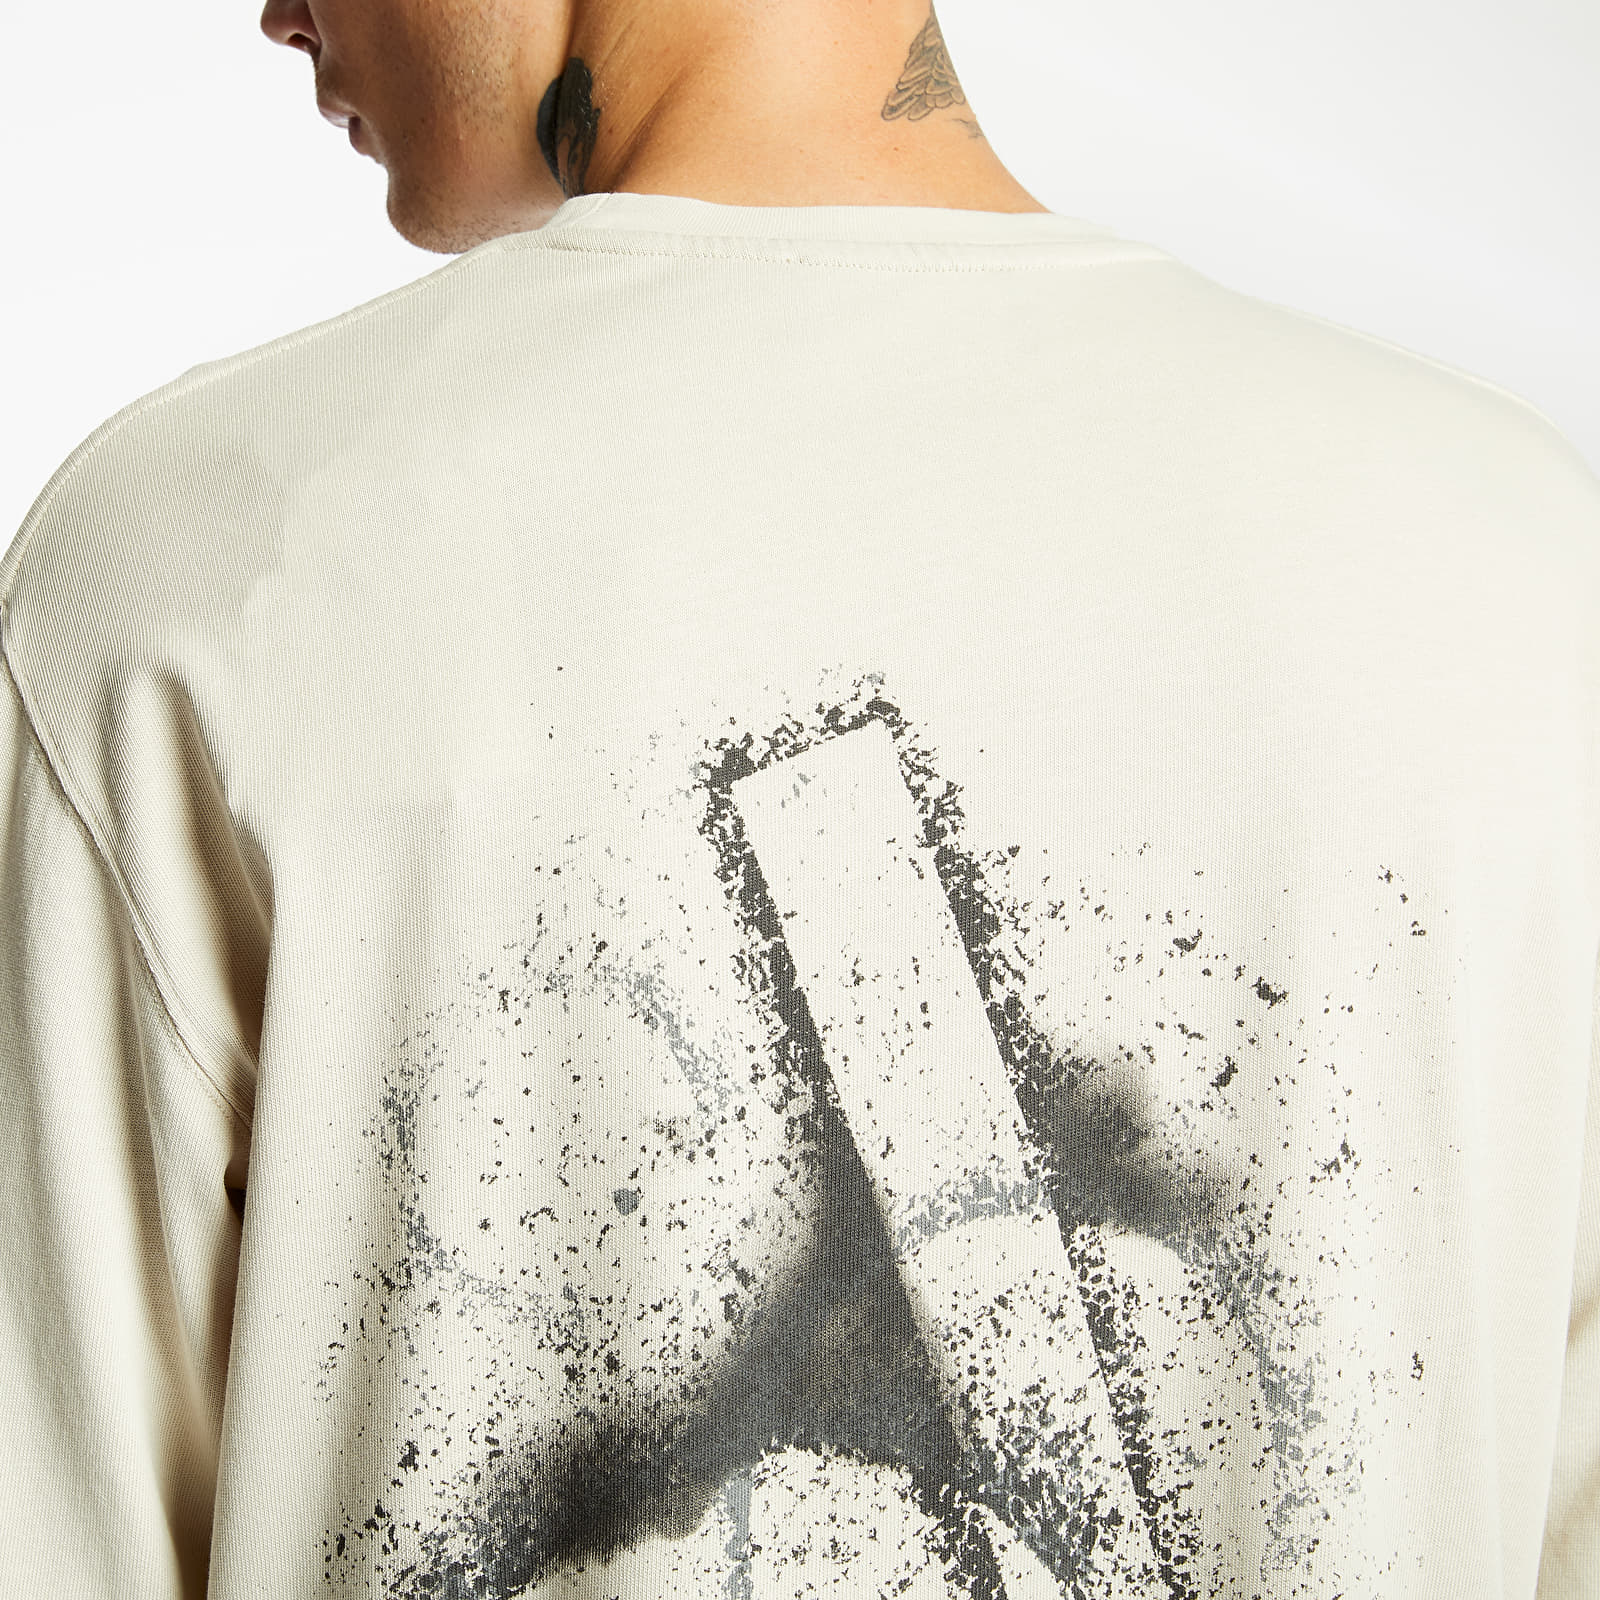 A-COLD-WALL* Stencil Long Sleeve Tee Stone, Gray